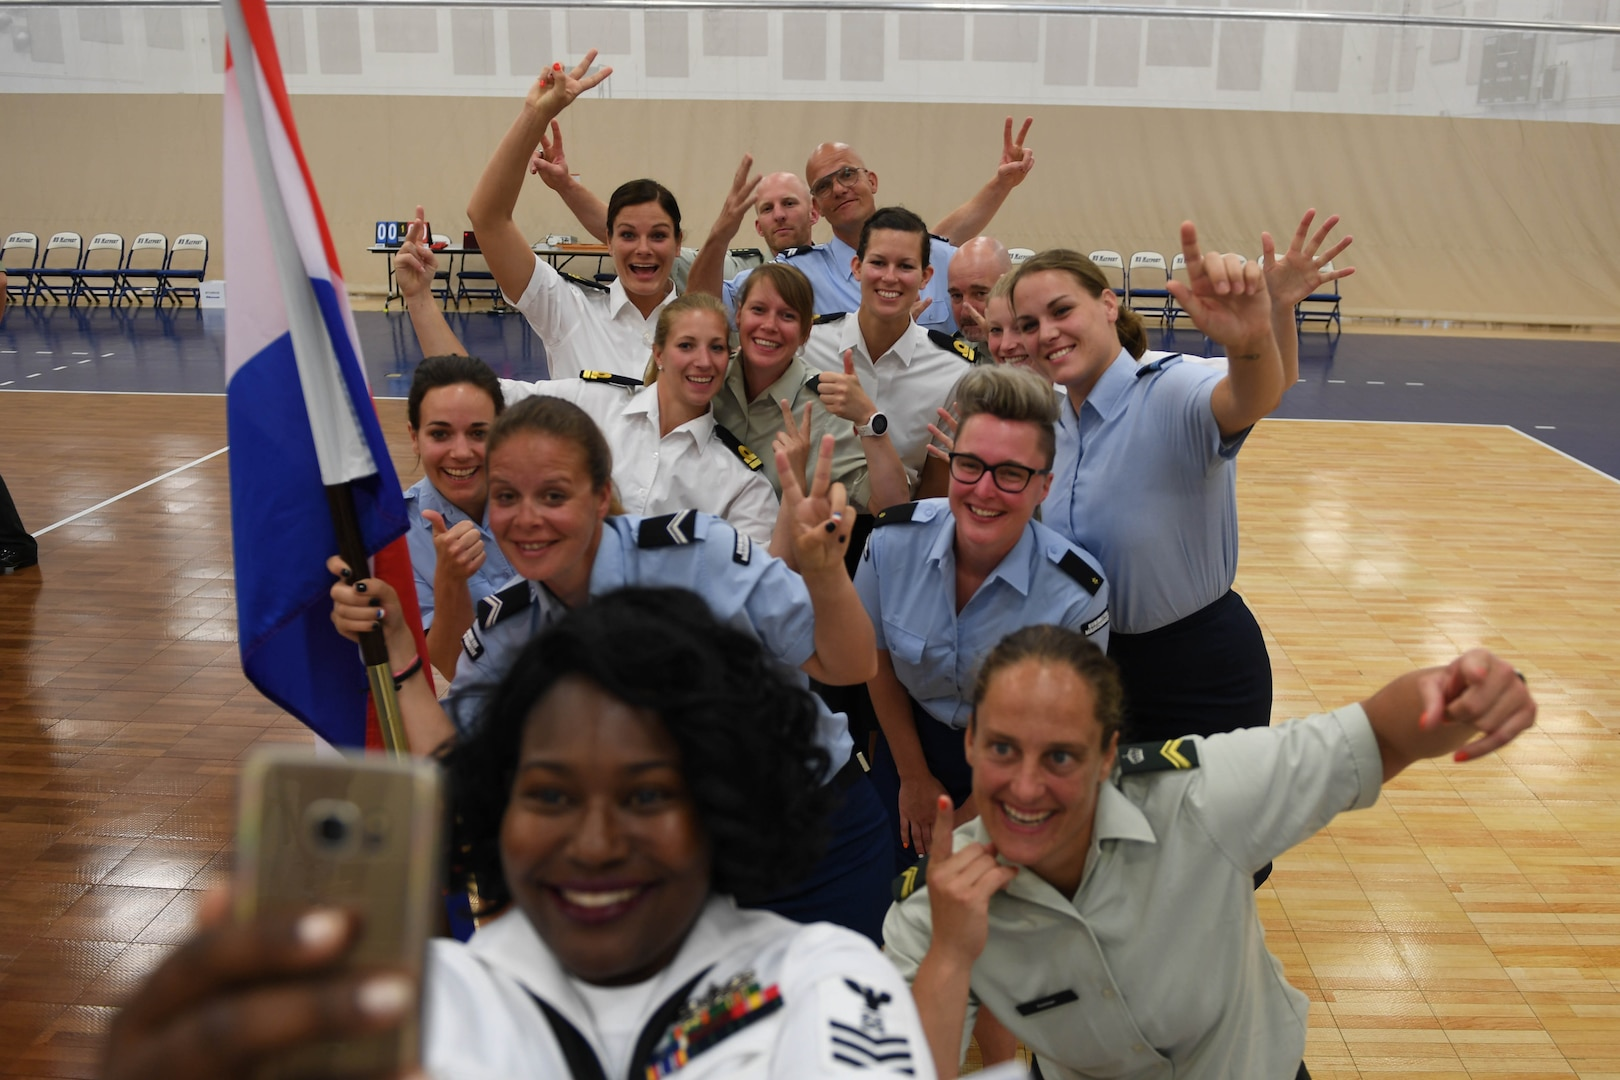 170603-N-UK306-192 JACKSONVILLE, Fla. (June 3, 2017)  Compeititors take part in the opening ceremony of the 18th Conseil International du Sport Militaire (CISM) World Military Women's Volleyball Championship at Naval Station Mayport.  Teams from the United States, Canada, China, Germany and The Netherlands will compete June 4-9, while promoting peace activities and solidarity among athletes. (U.S. Navy photo by Mass Communication Specialist 2nd Class Timothy Schumaker/Released)